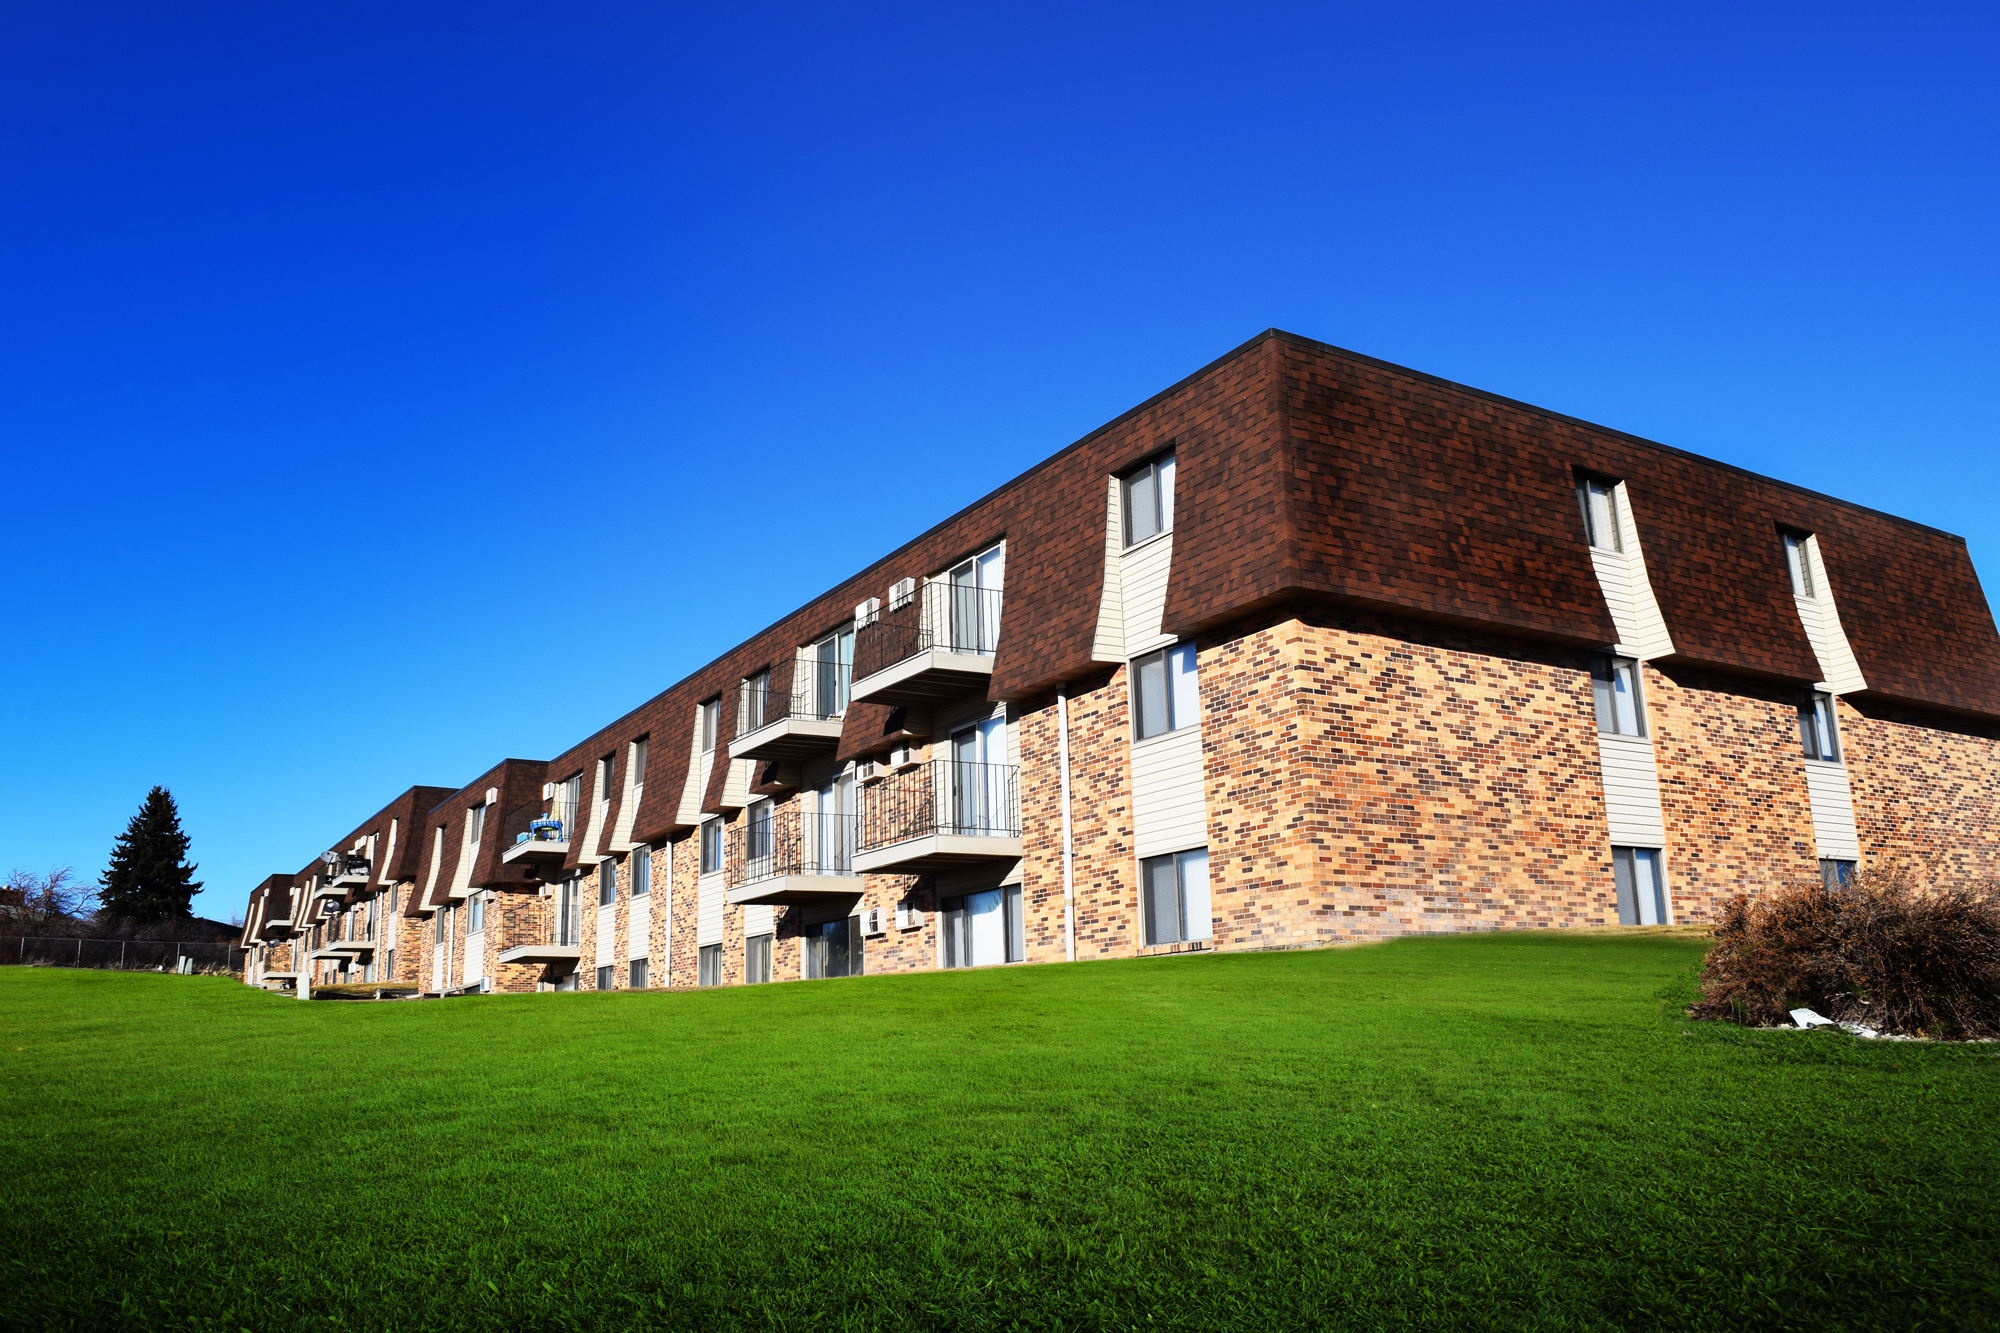 Valley View Apartments image 4